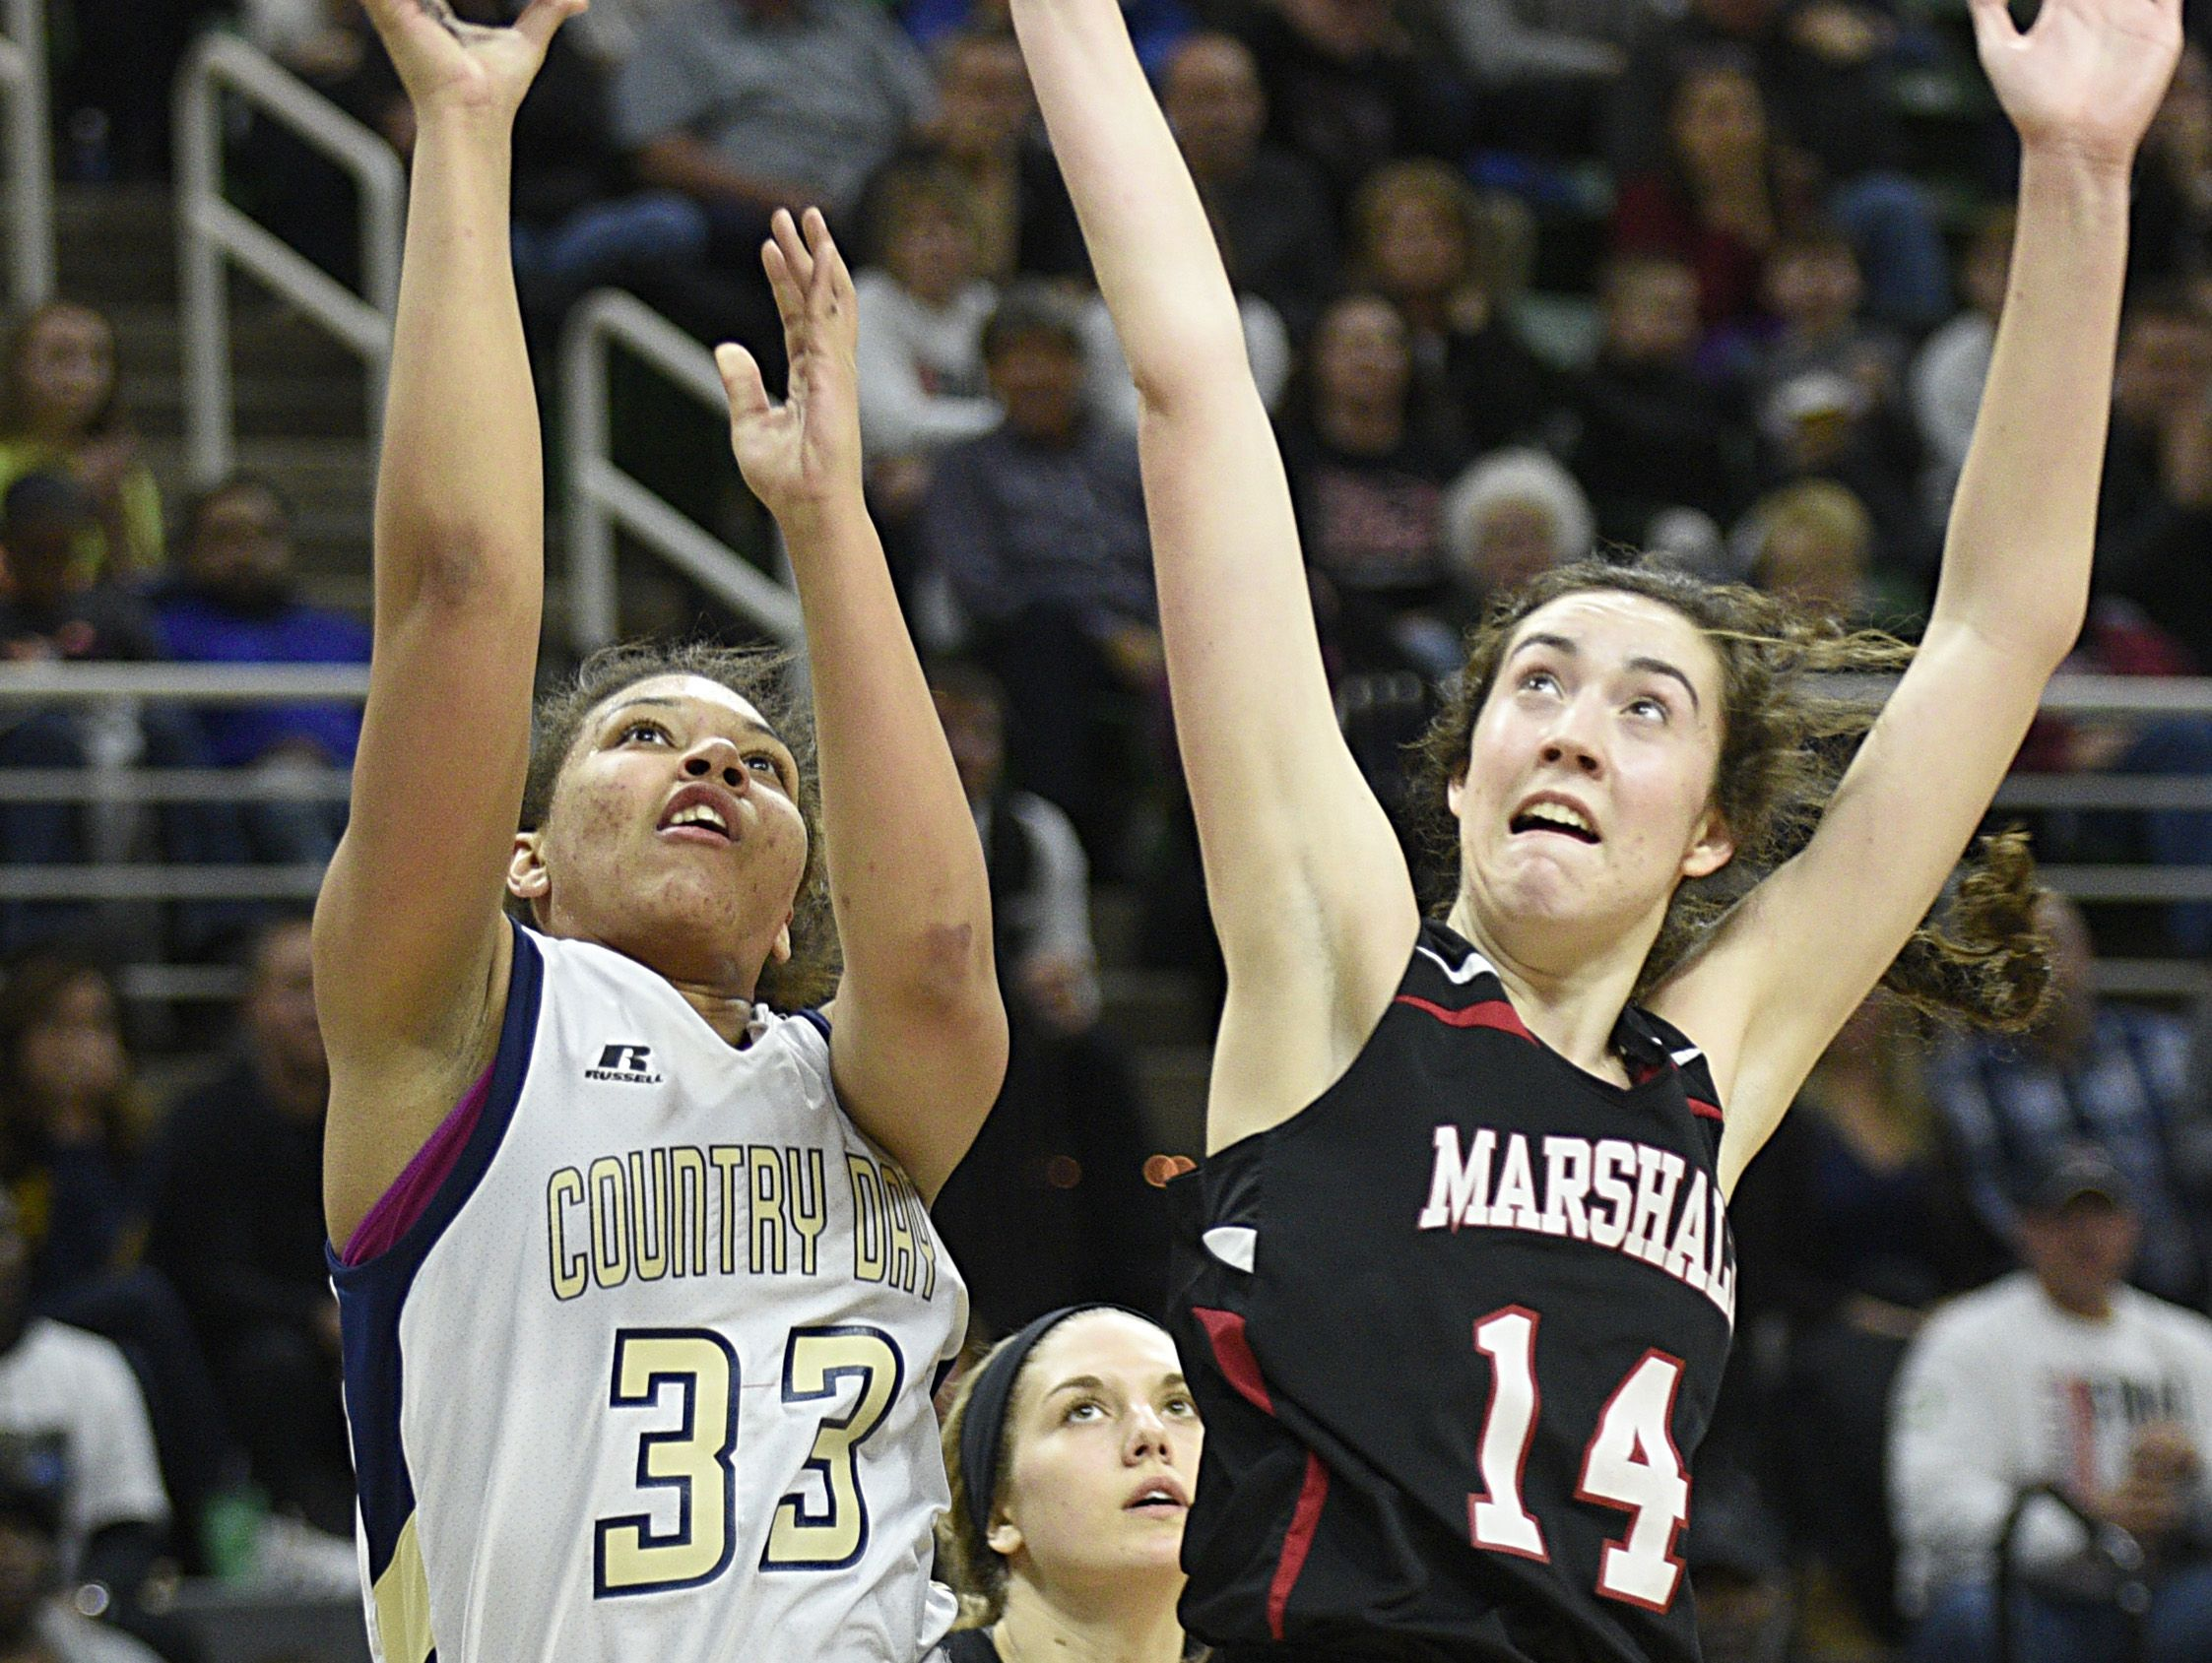 Detroit Country Day's Destiny Lewis (33) shoots over Marshall's Georgianna Partley (14).